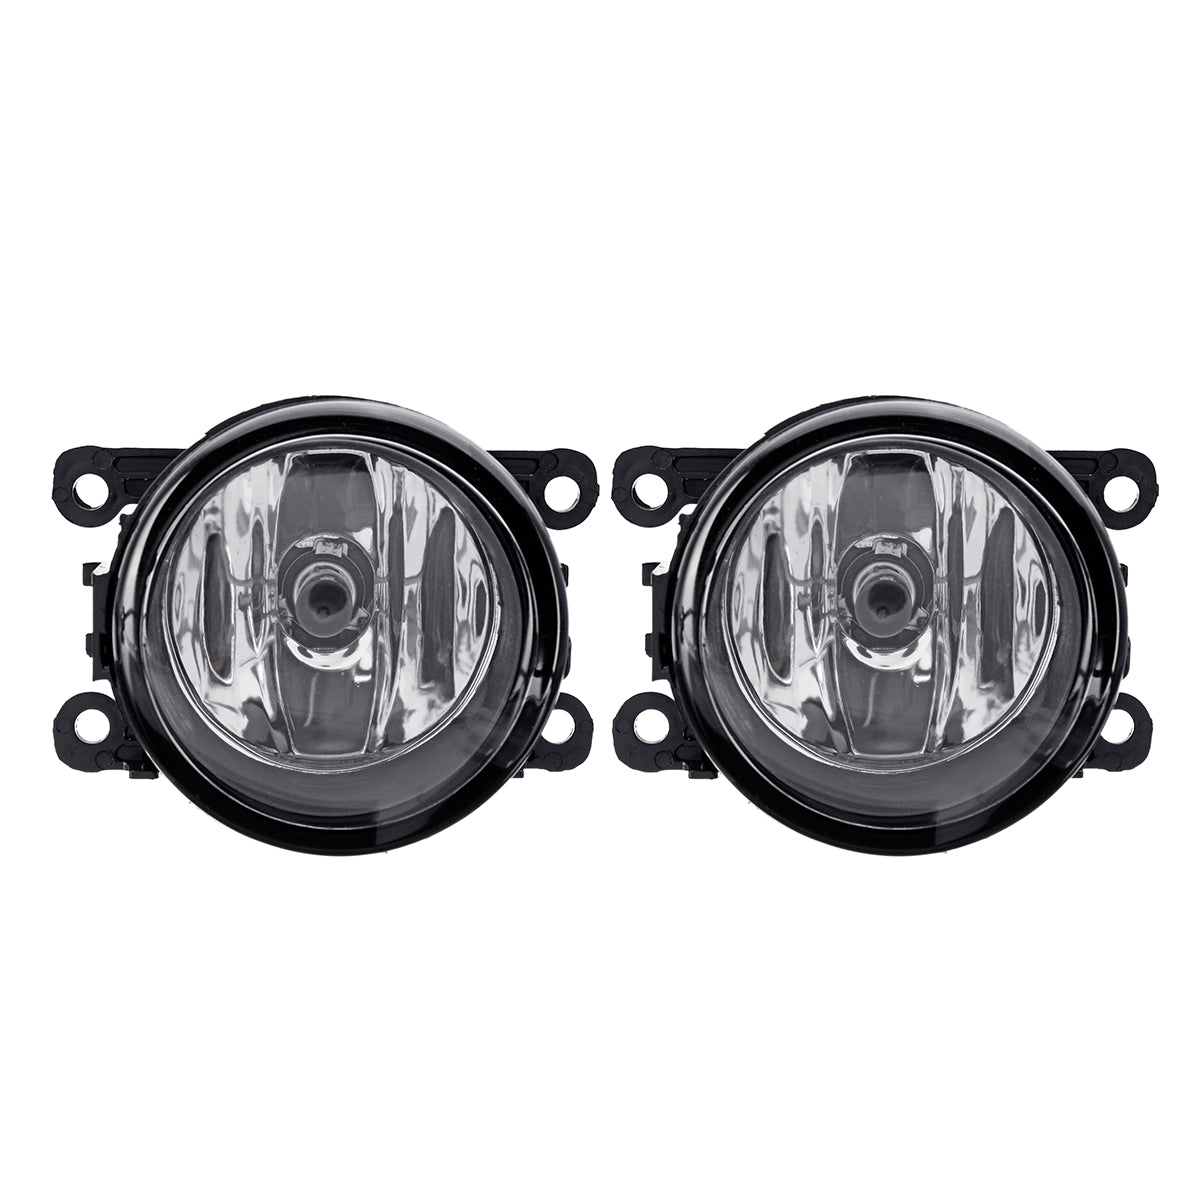 Car Front Bumper Fog Lights with H11 Lamps Harness Pair for Mitsubishi Outlander Sport/RVR/ASX